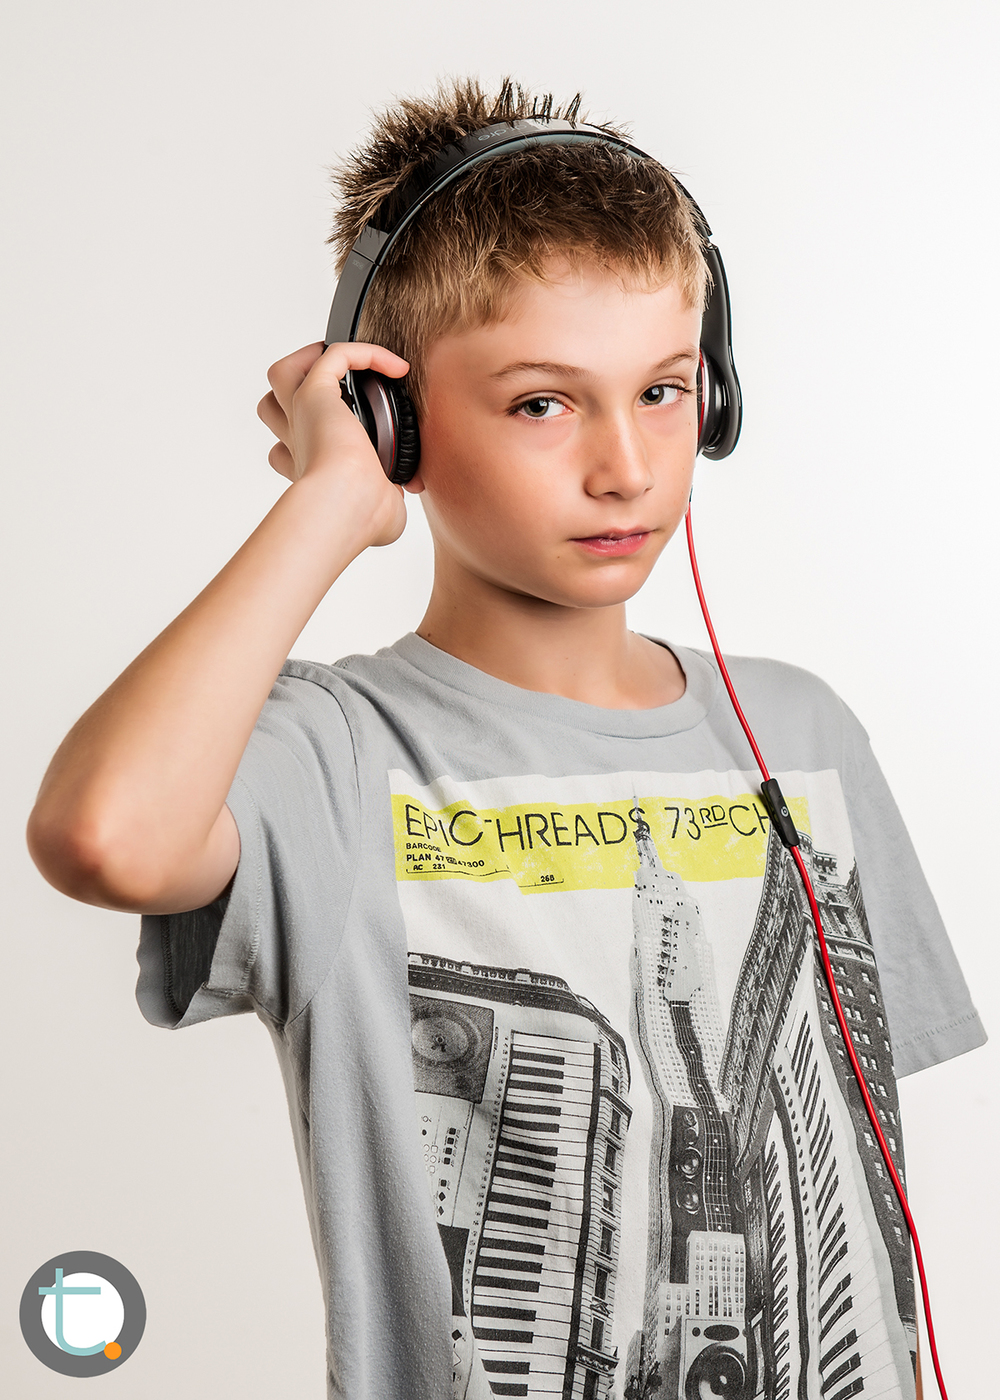 studio_kid_headphones_tracyallynphotography_tween_beats_005.jpg